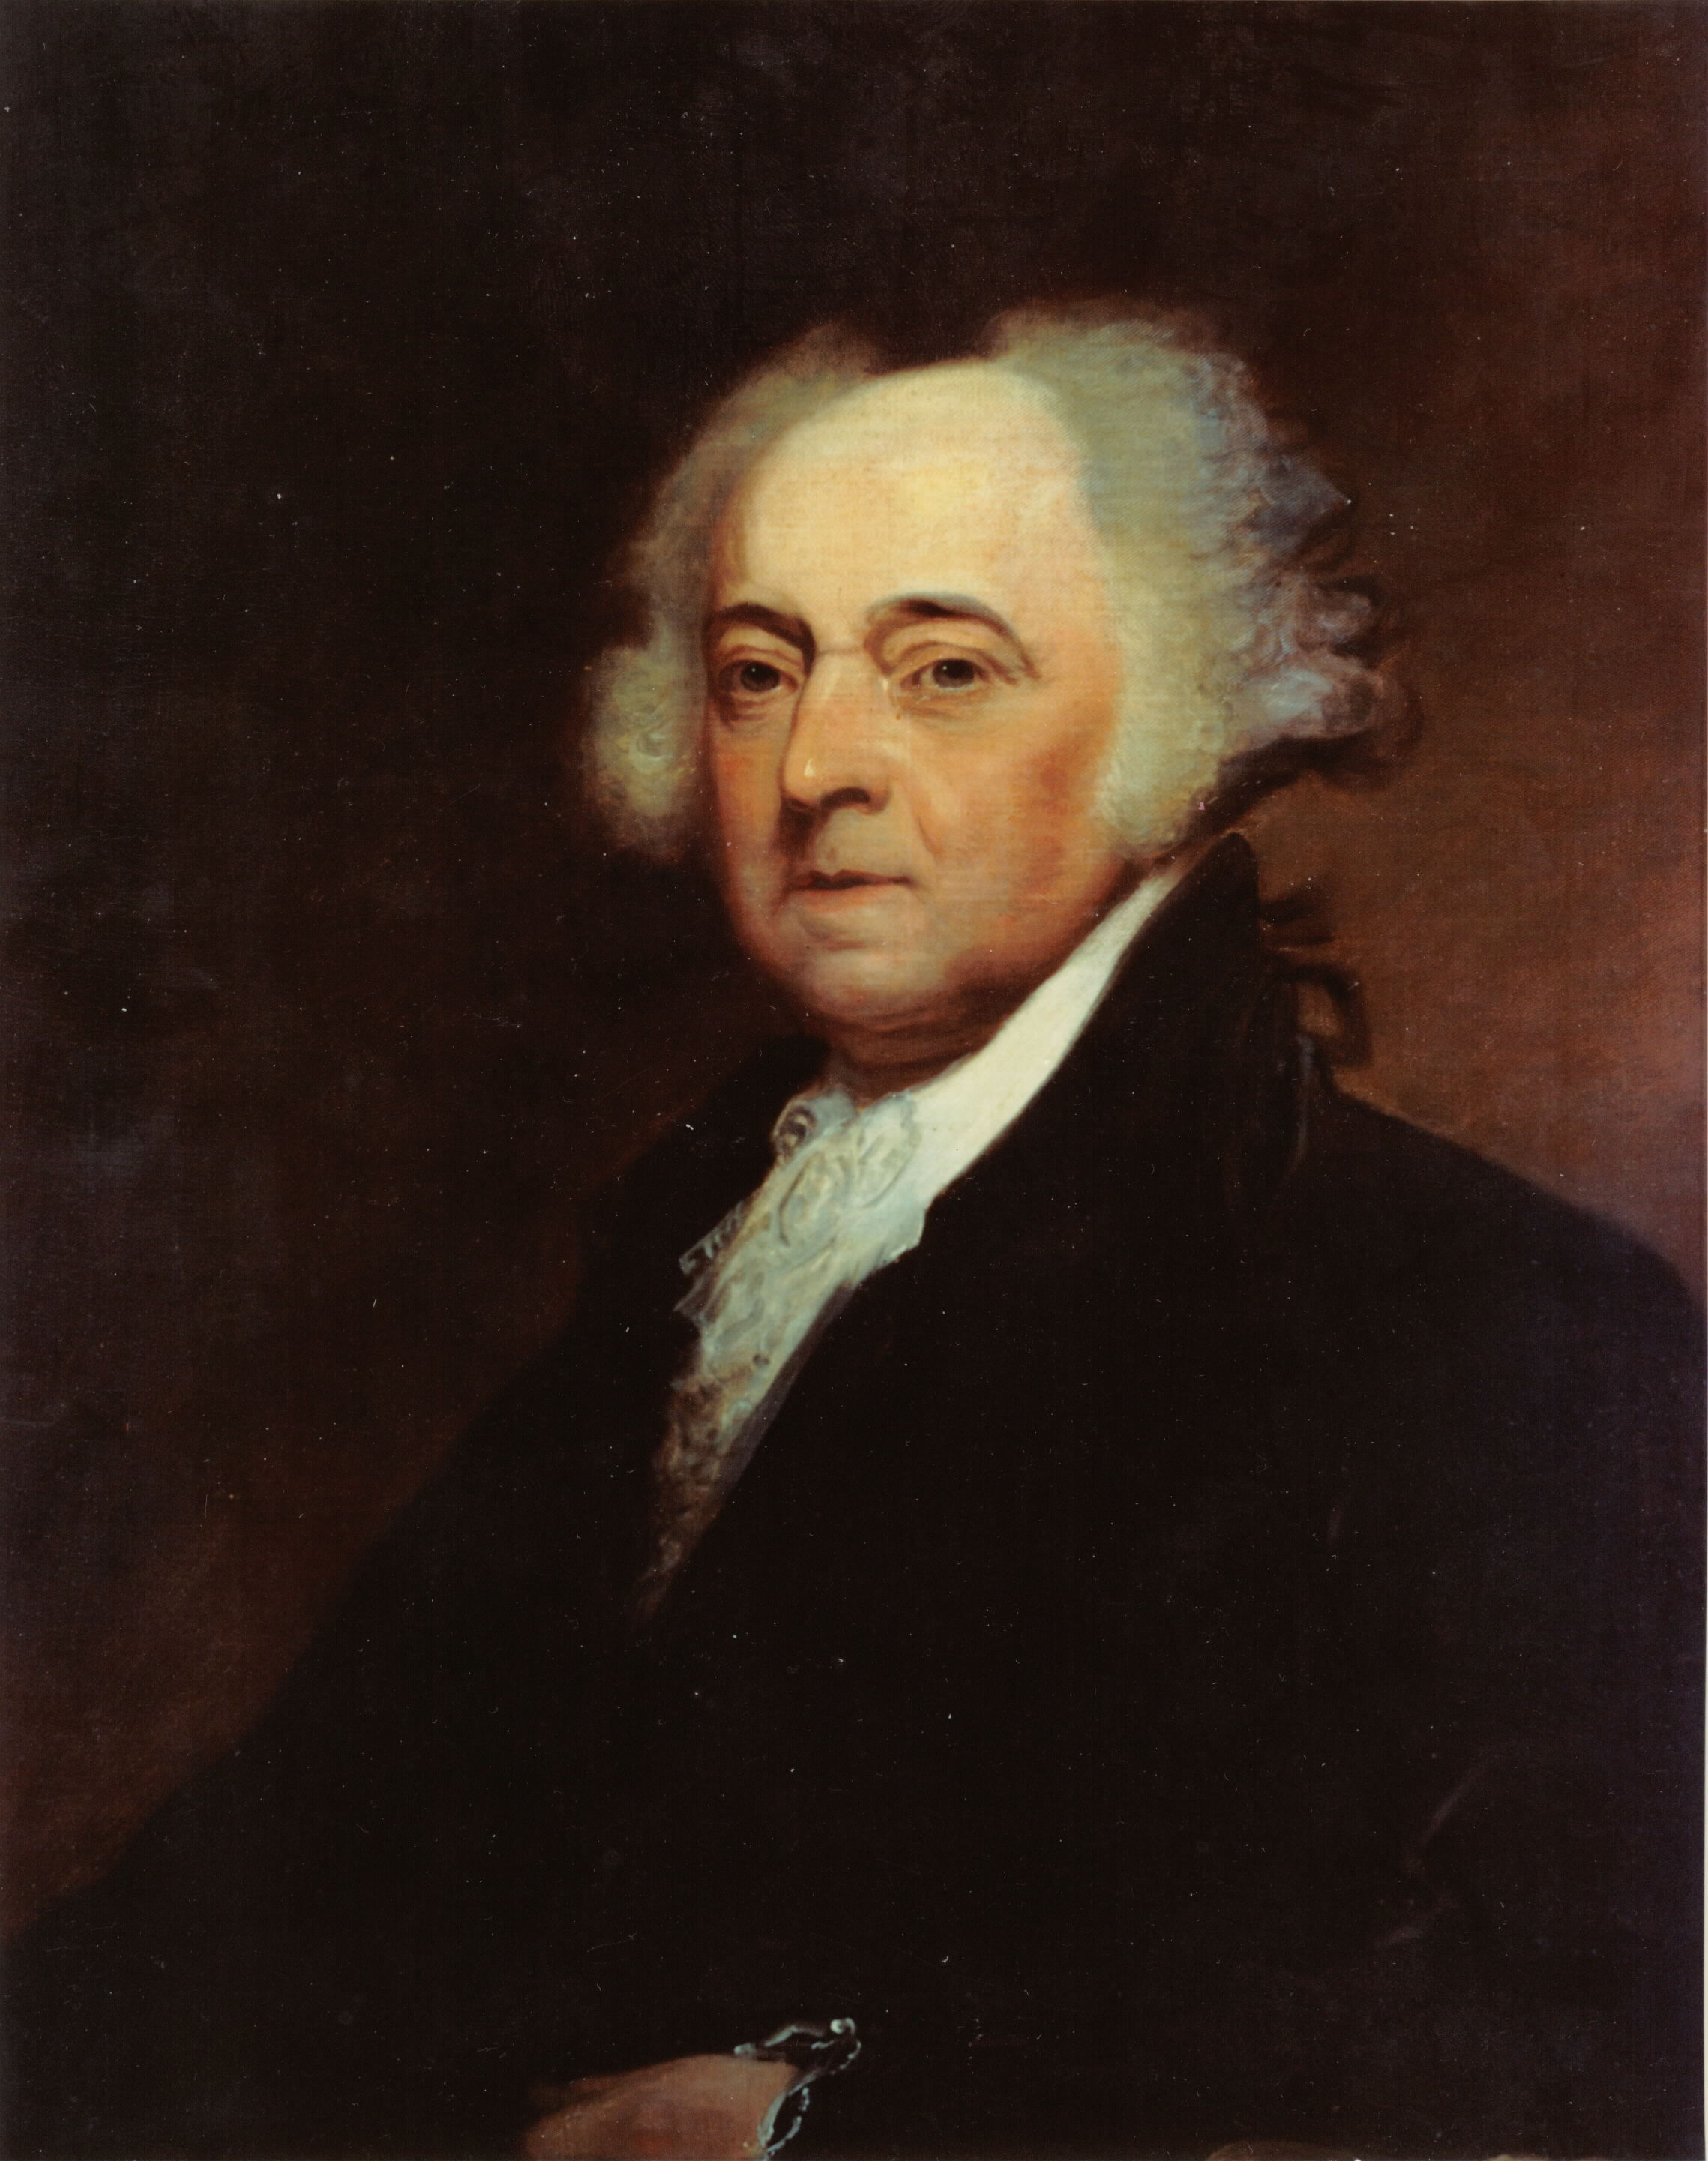 abigail adams asks her husband to ldquo remember the ladies rdquo mar 31 news